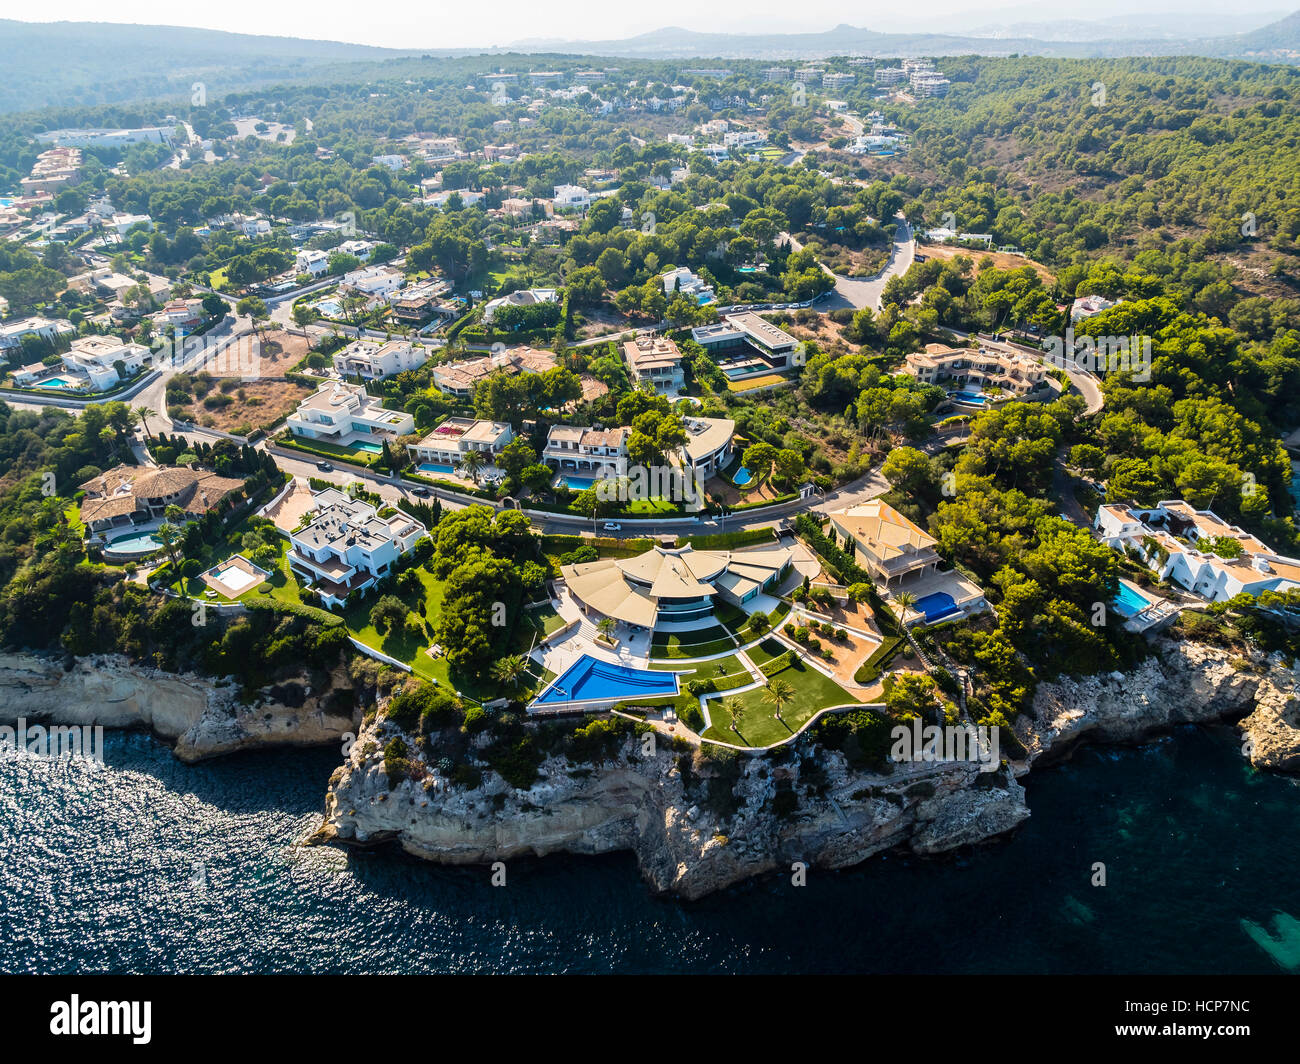 Aerial view, villas at Portals Vells, El Toro, Mallorca, Balearic Islands, Spain - Stock Image